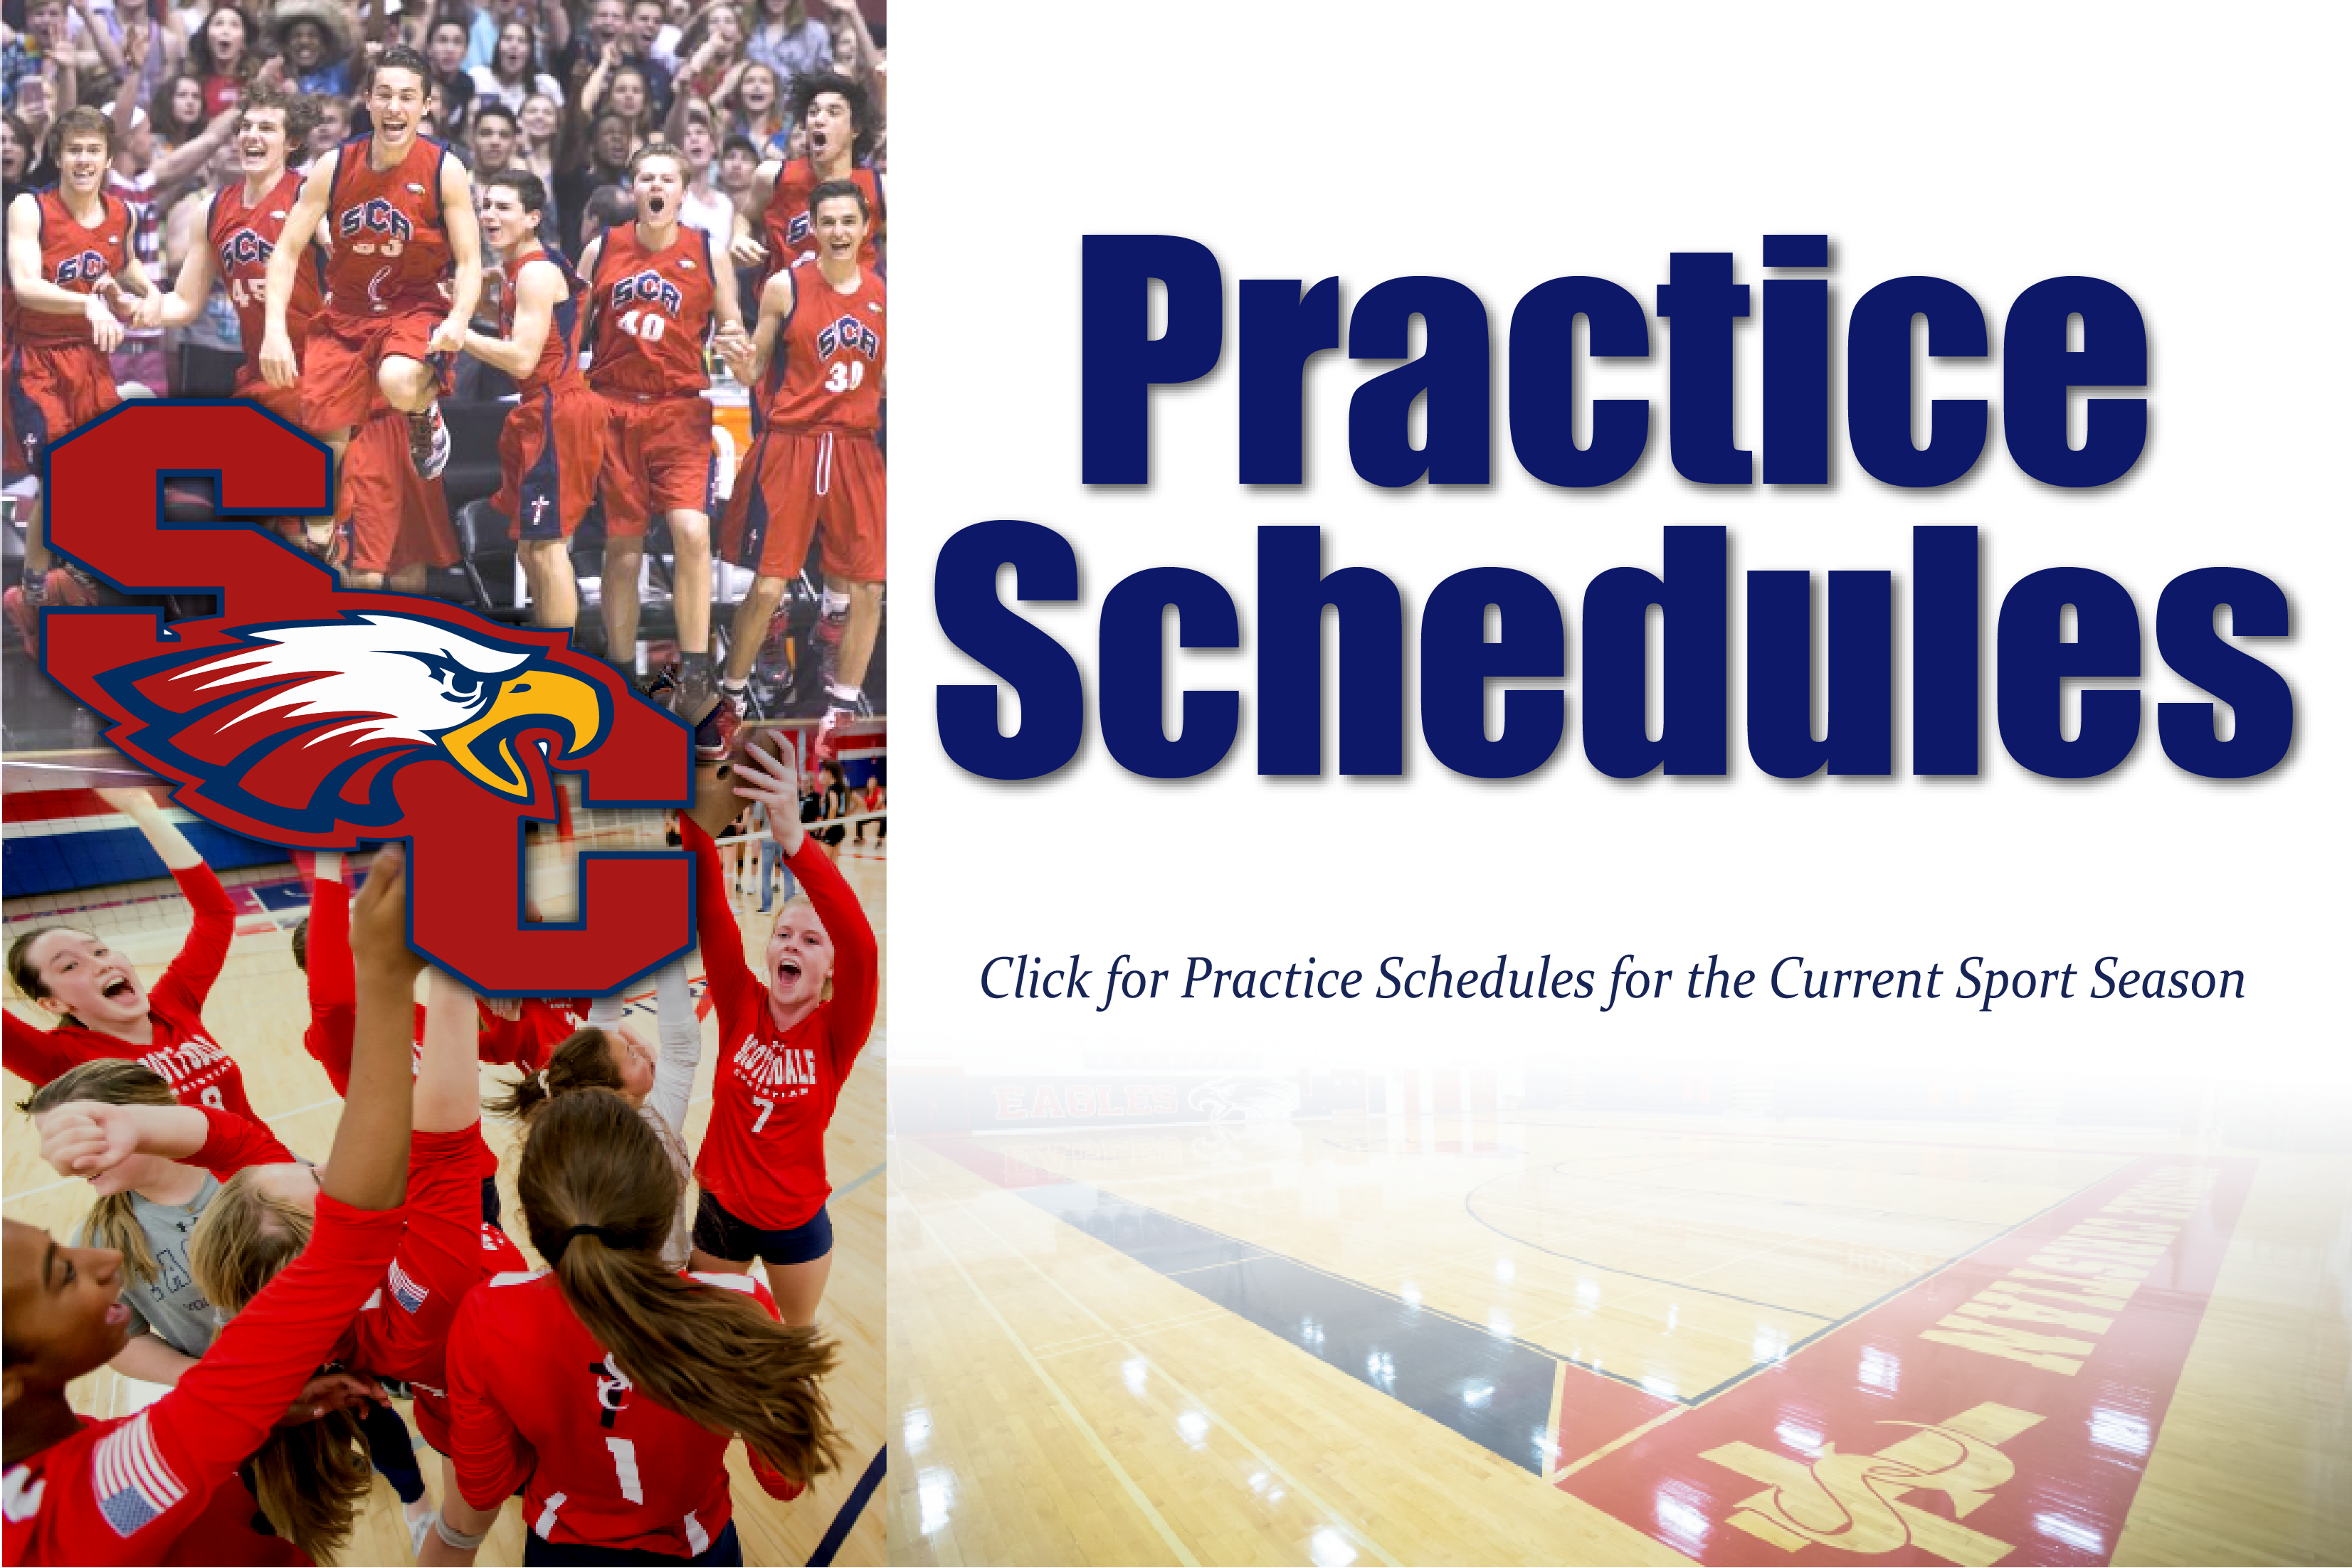 Click Here for Practice Schedules